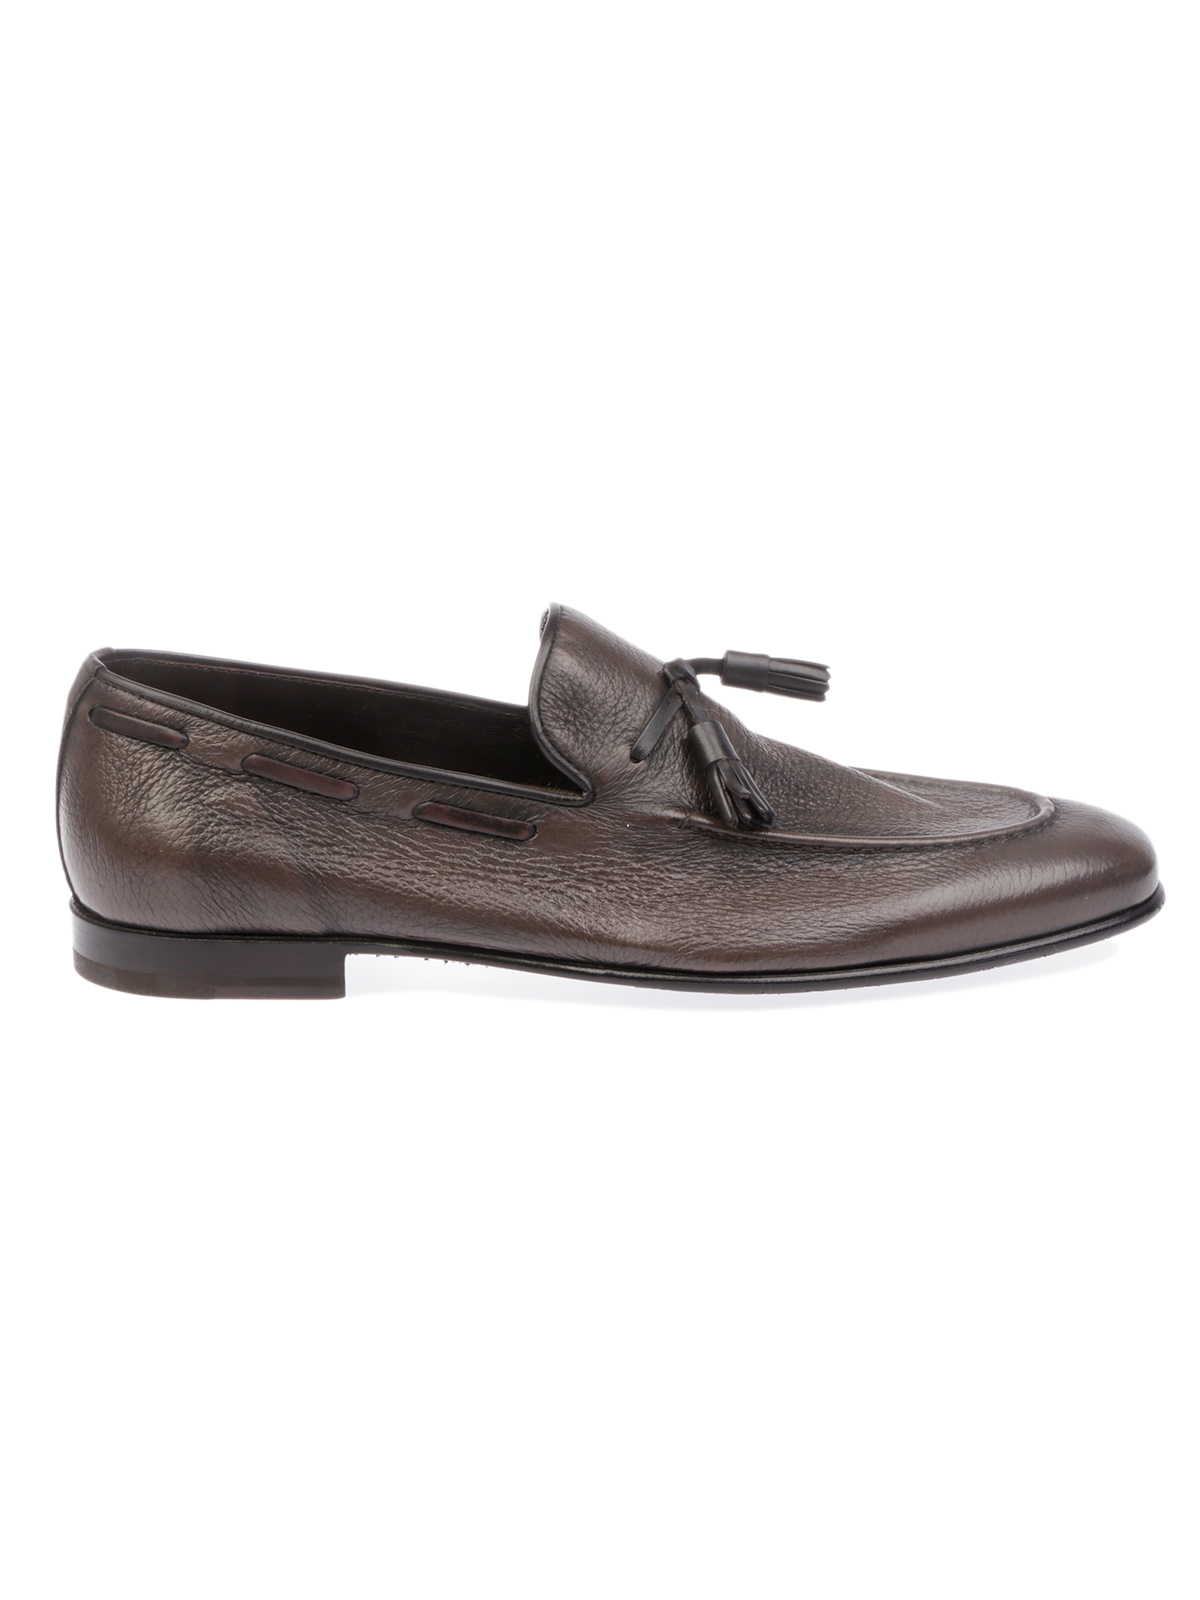 Picture of BARRETT | Men's Moccasin with Tassels